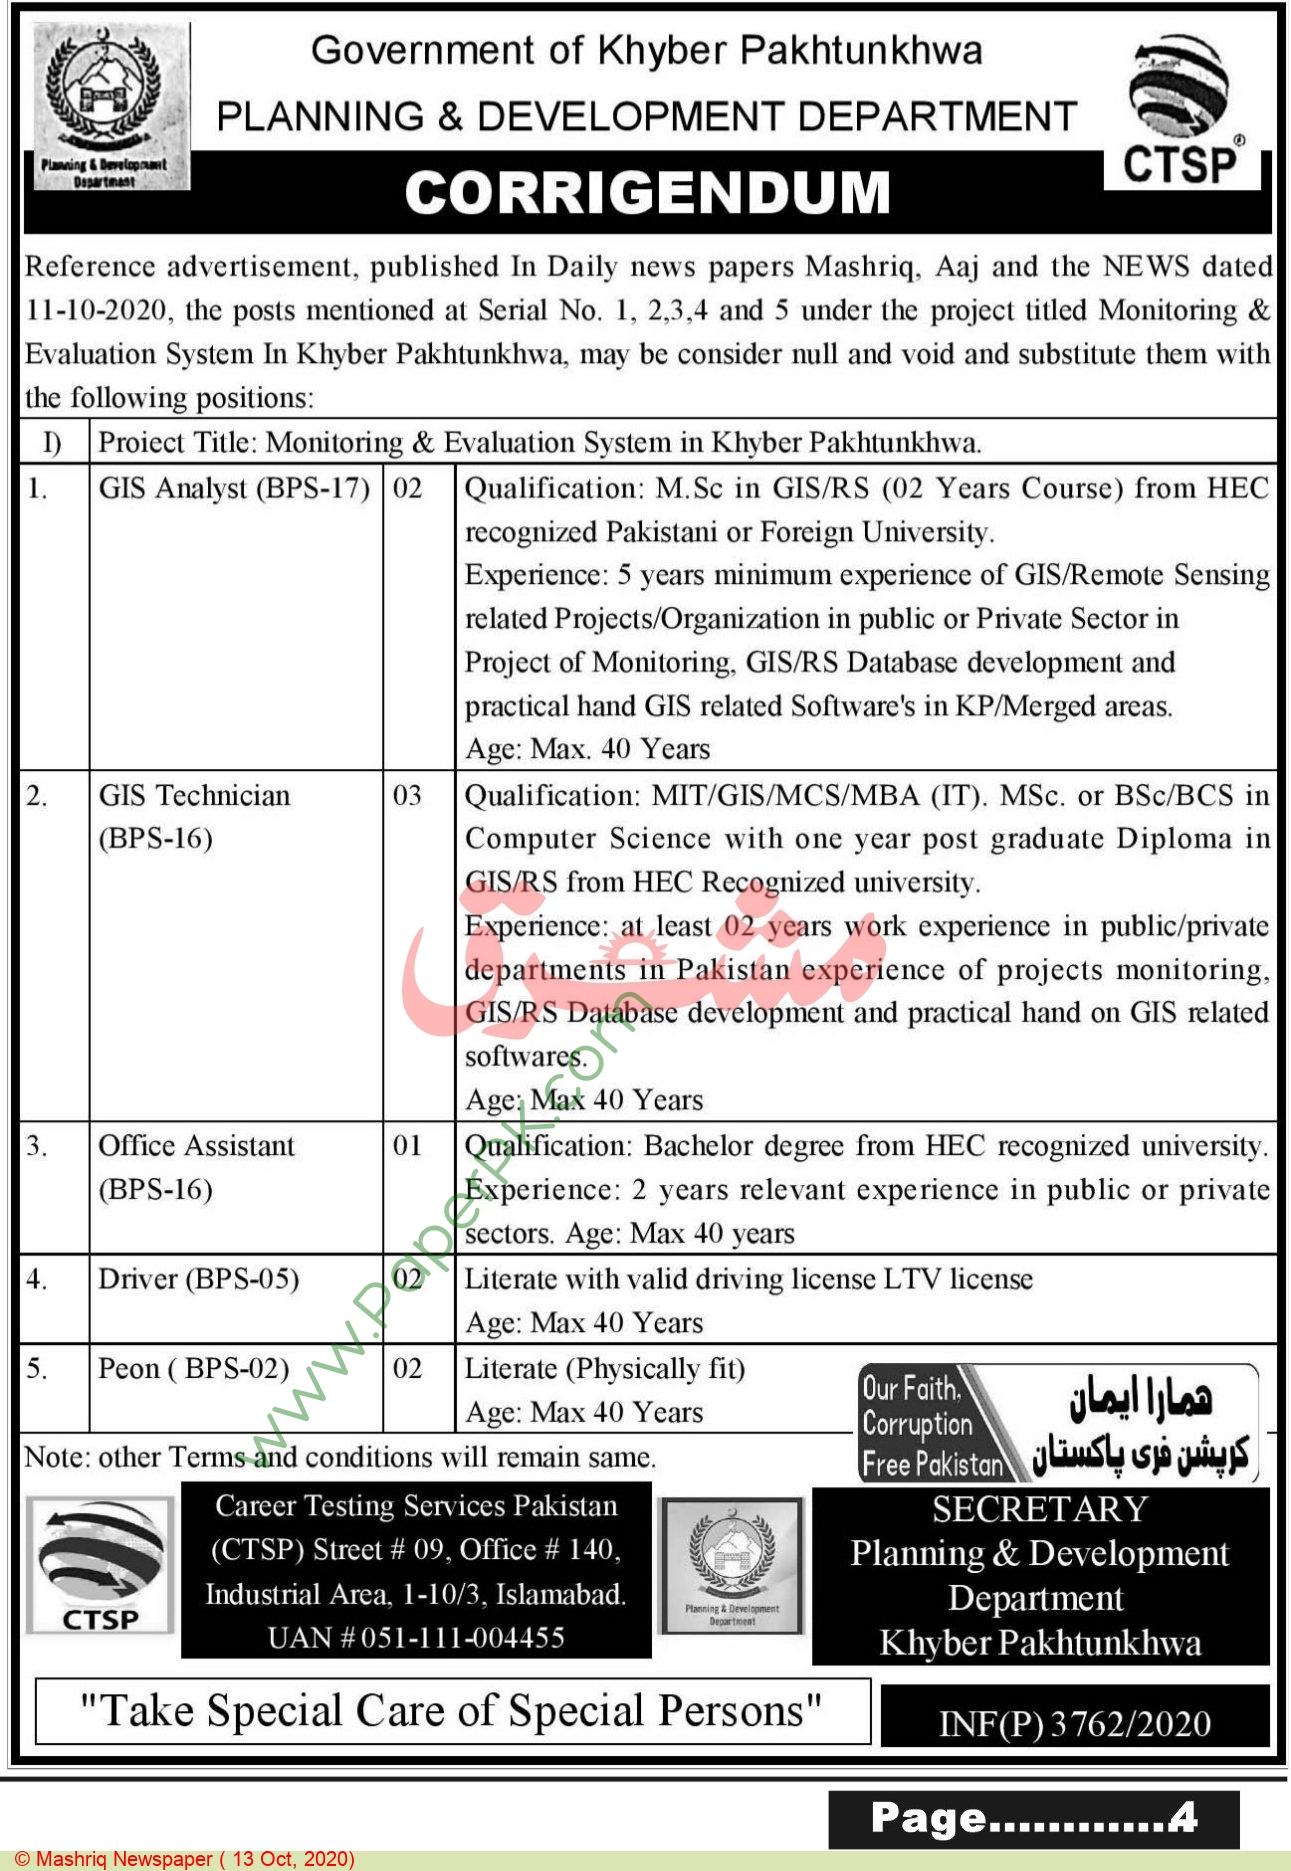 Planning & Development Department jobs newspaper ad for Driver in Peshawar